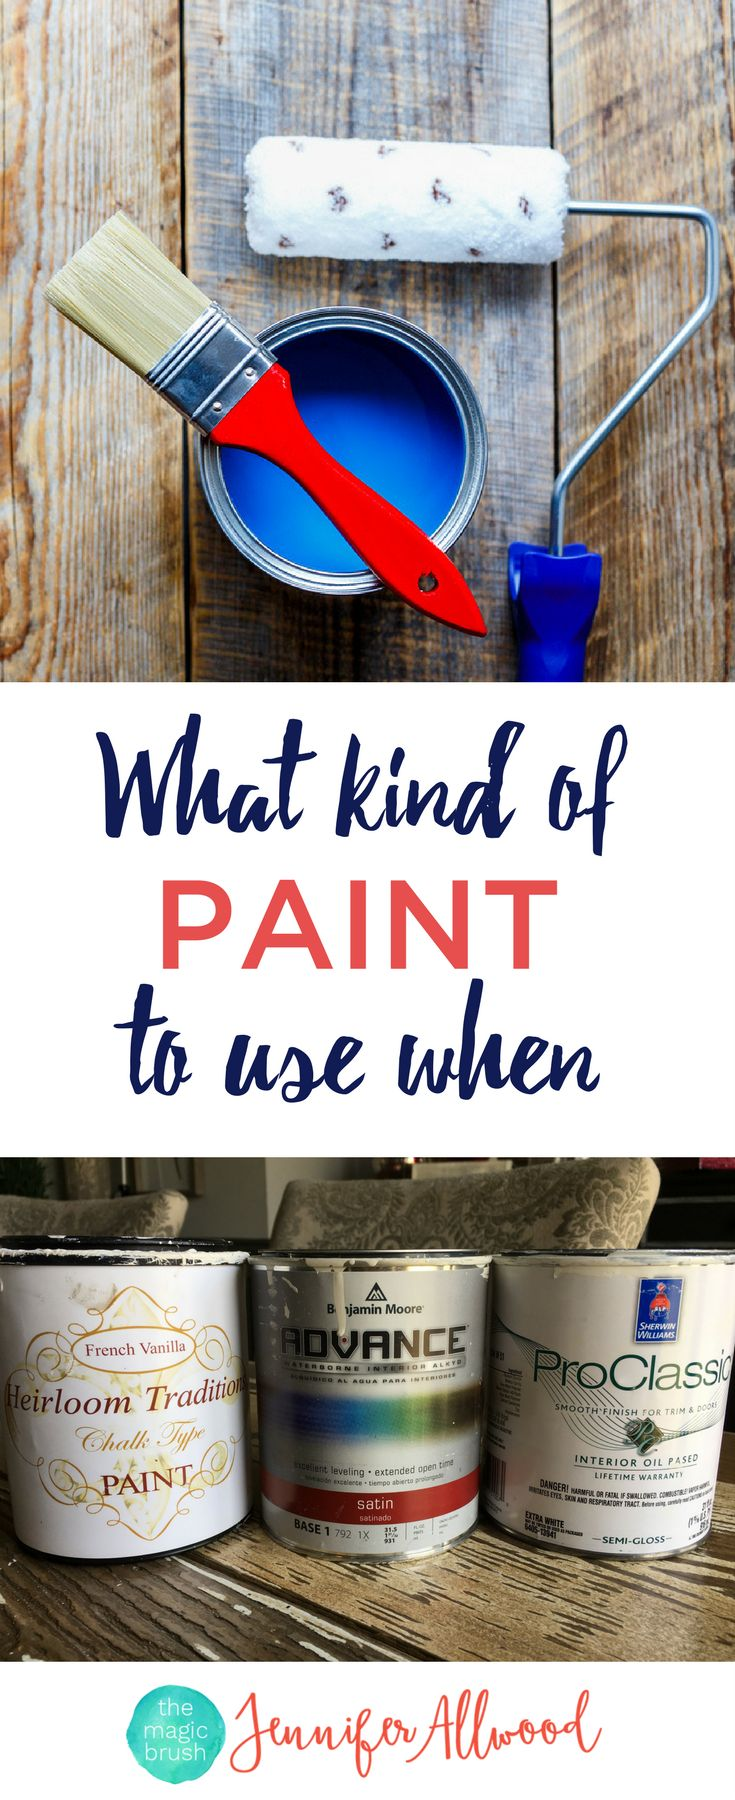 What type of paint to use and when. Know the difference between Chalk paint vs Latex Paint vs Oil-based Paints with this free paint guide reference sheet | Learn what surfaces to which paints on, the pros and cons of each kind of paint | What kind of Paint to use on Kitchen Cabinets and Furniture | Free Paint Guide by theMagicBrushinc.com